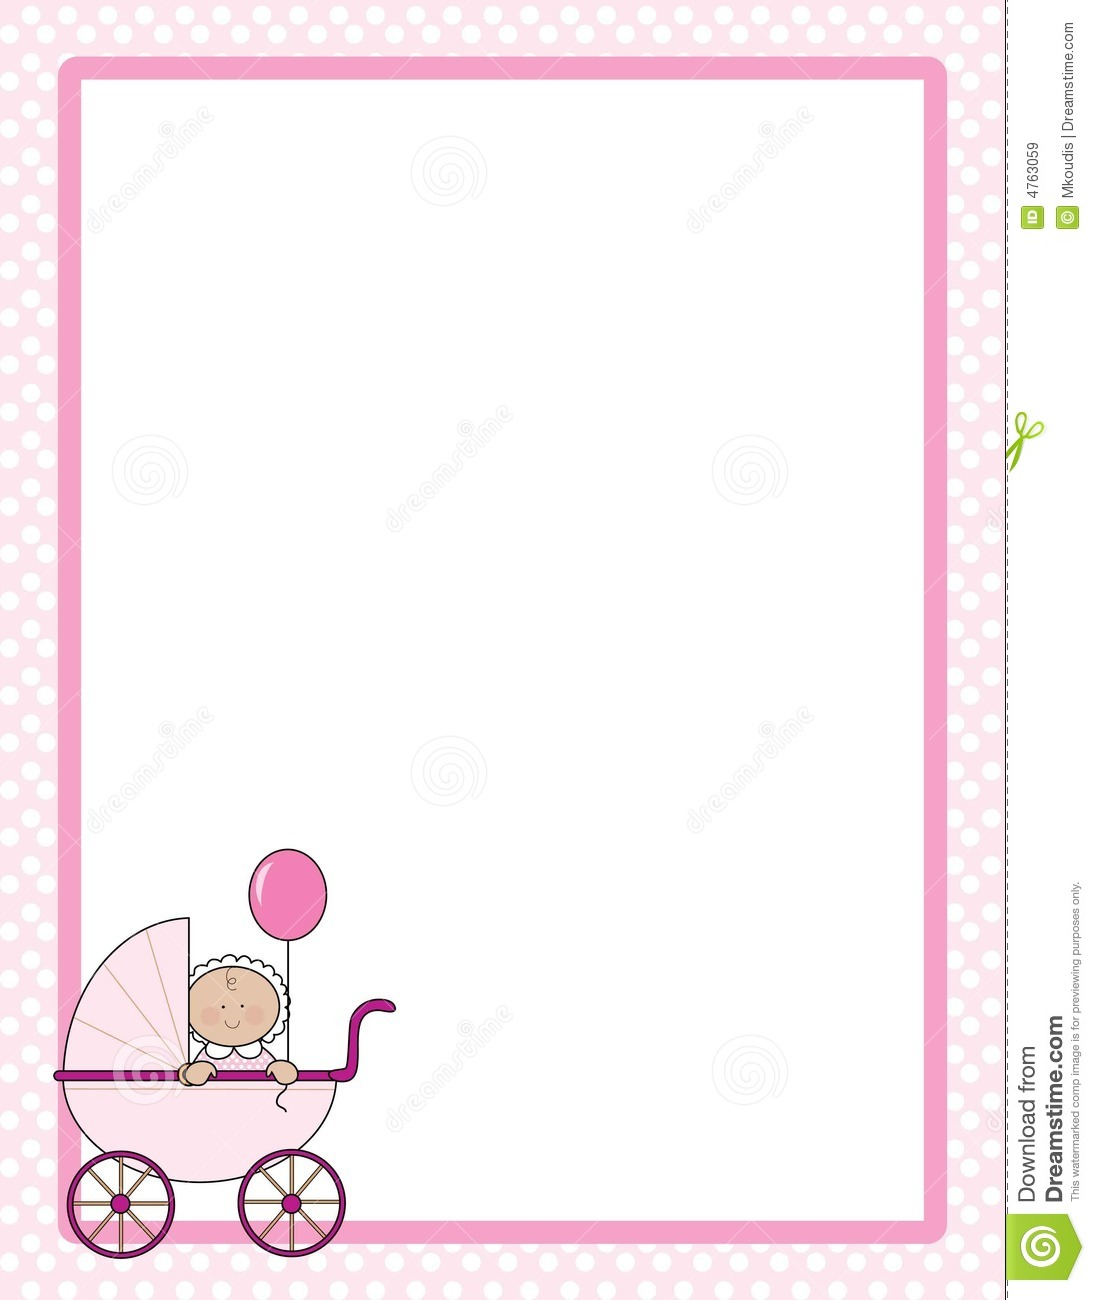 Polka dot border with baby girl in a carriage in one corner.